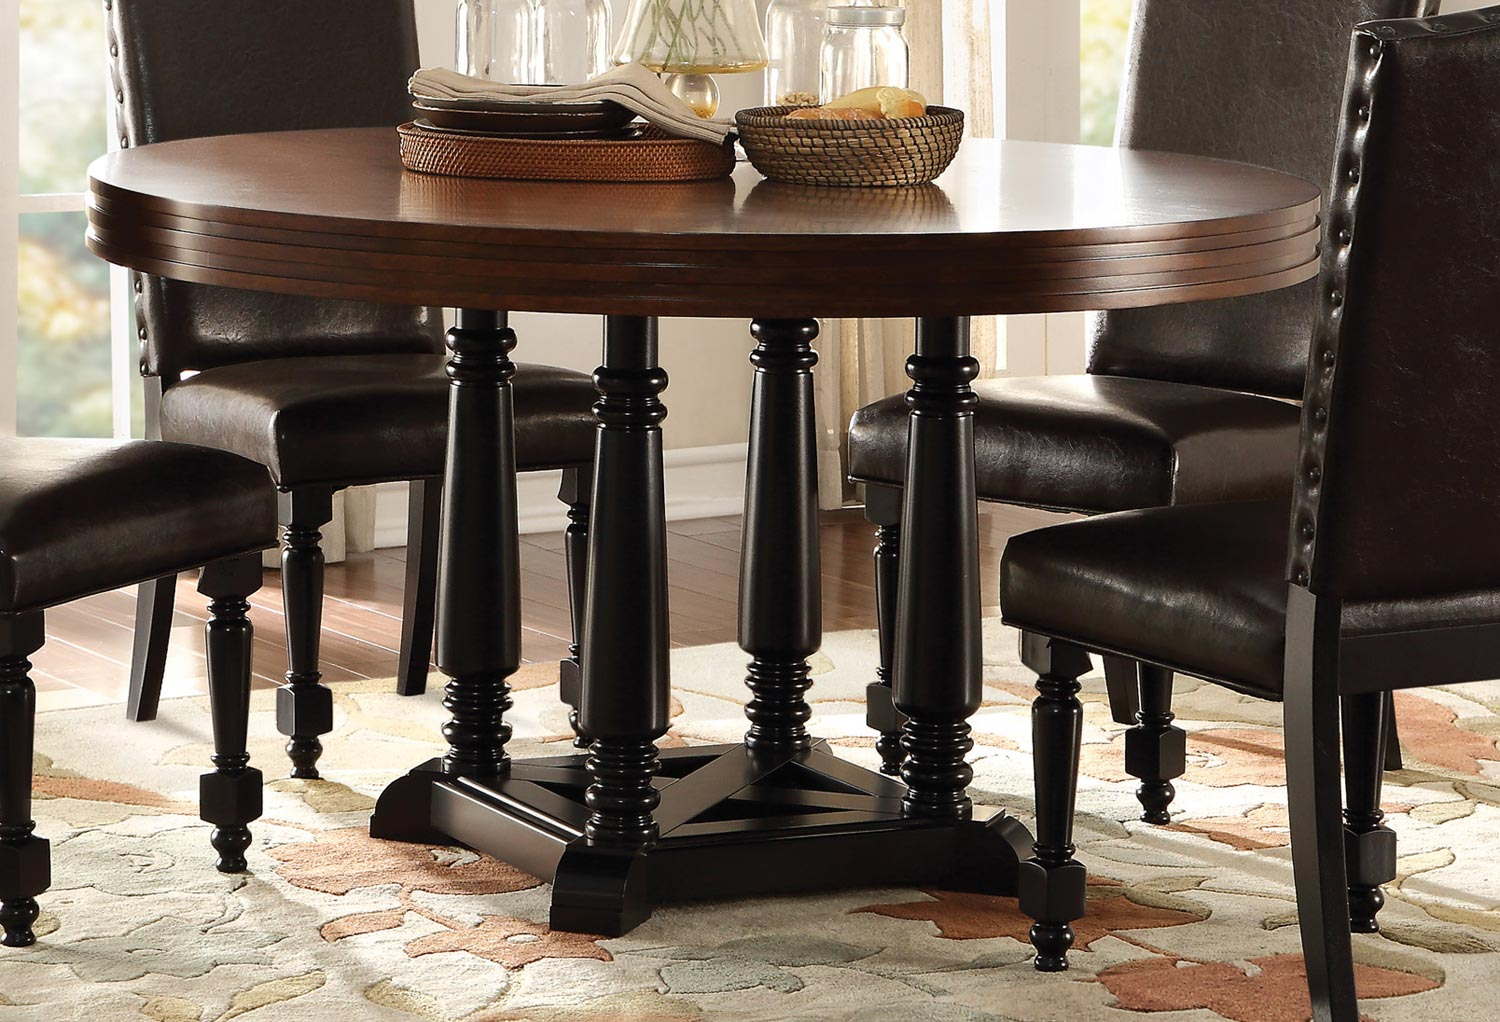 homelegance blossomwood round dining table cherry black 5404 54. Black Bedroom Furniture Sets. Home Design Ideas